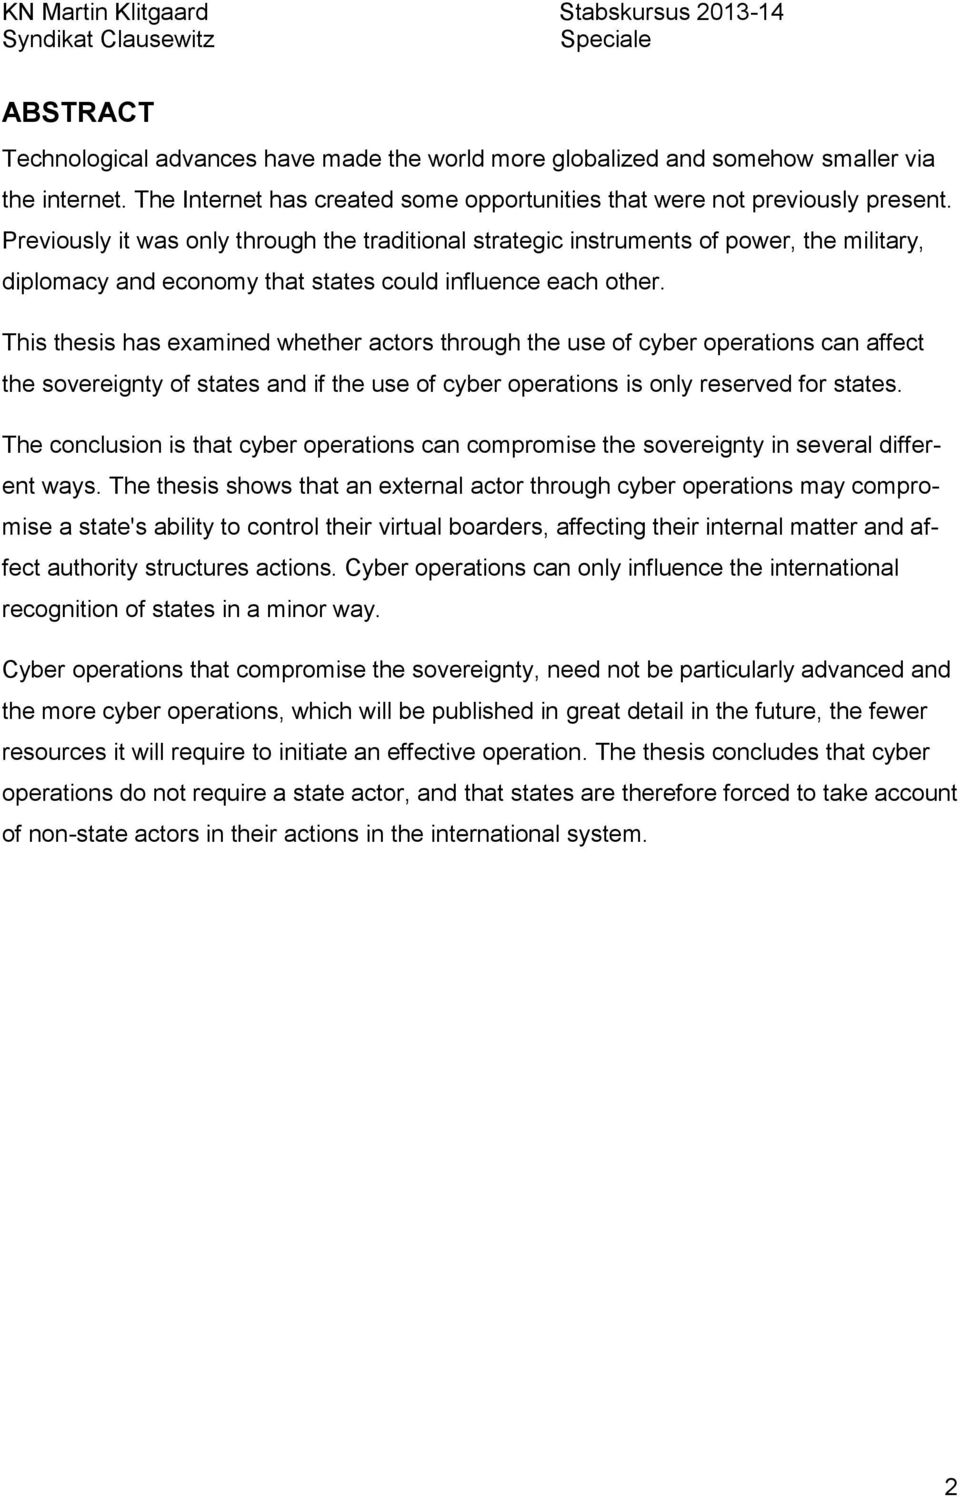 This thesis has examined whether actors through the use of cyber operations can affect the sovereignty of states and if the use of cyber operations is only reserved for states.